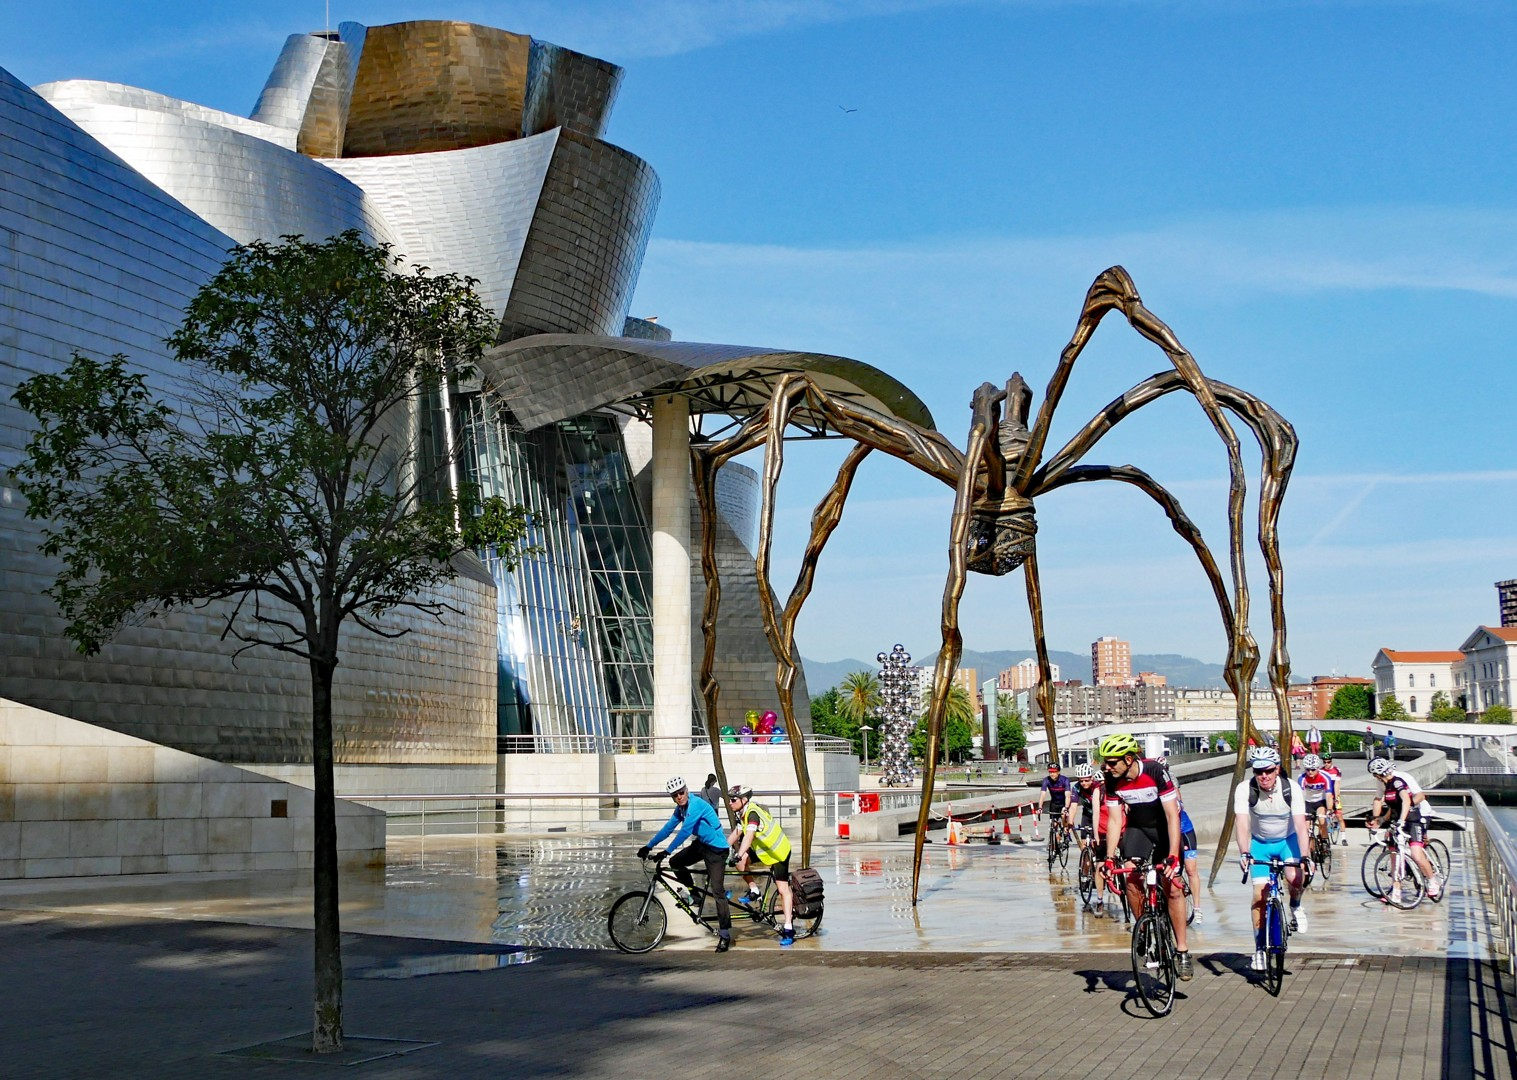 Road-Cycling-Holiday-Northern-Spain-Bilbao-to-Barcelona-Guided-MAMAN-Guggenheim-Museum - Northern Spain - Bilbao to Barcelona - Guided Road Cycling Holiday - Road Cycling